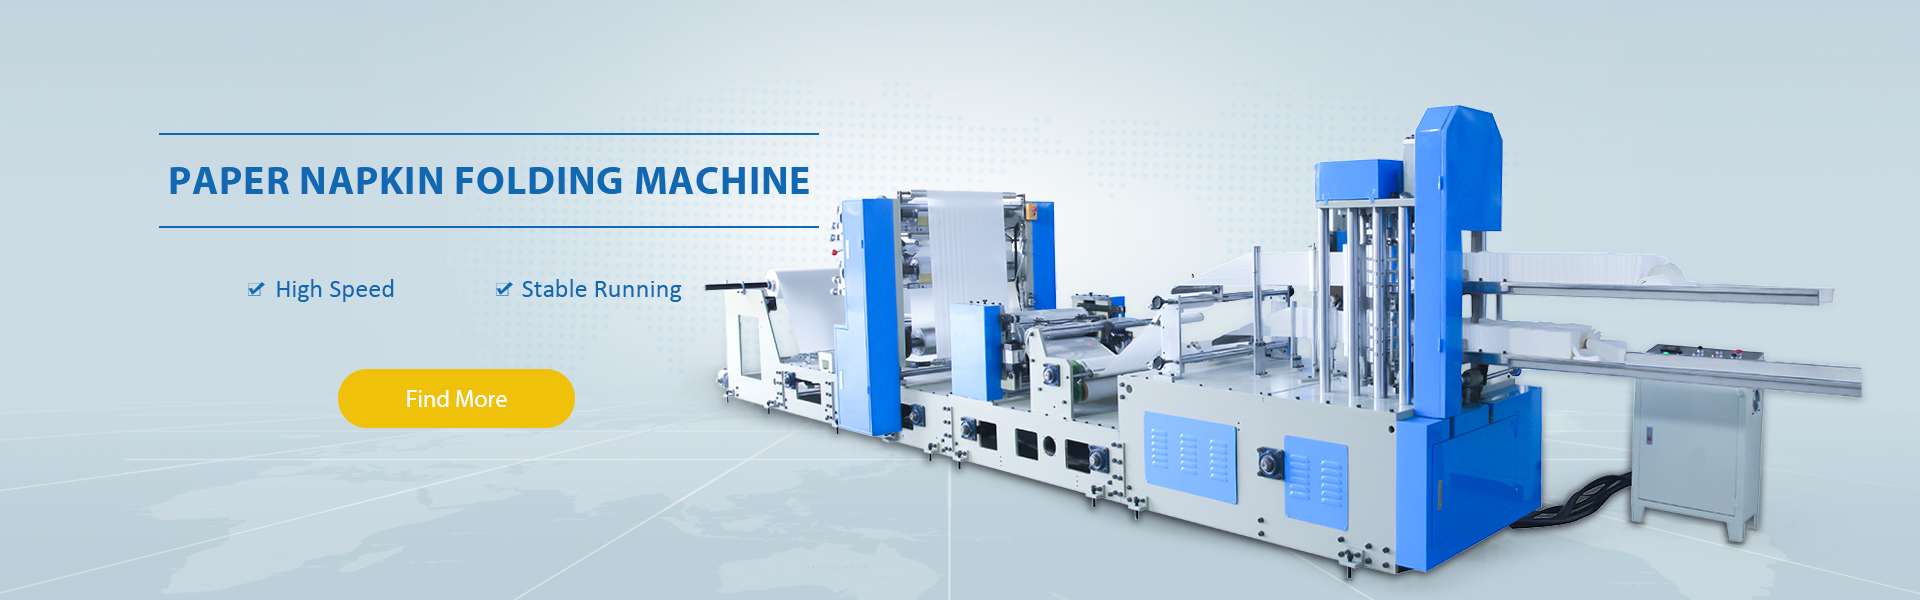 tissue paper making machine, toilet paper machine, napkin tissue